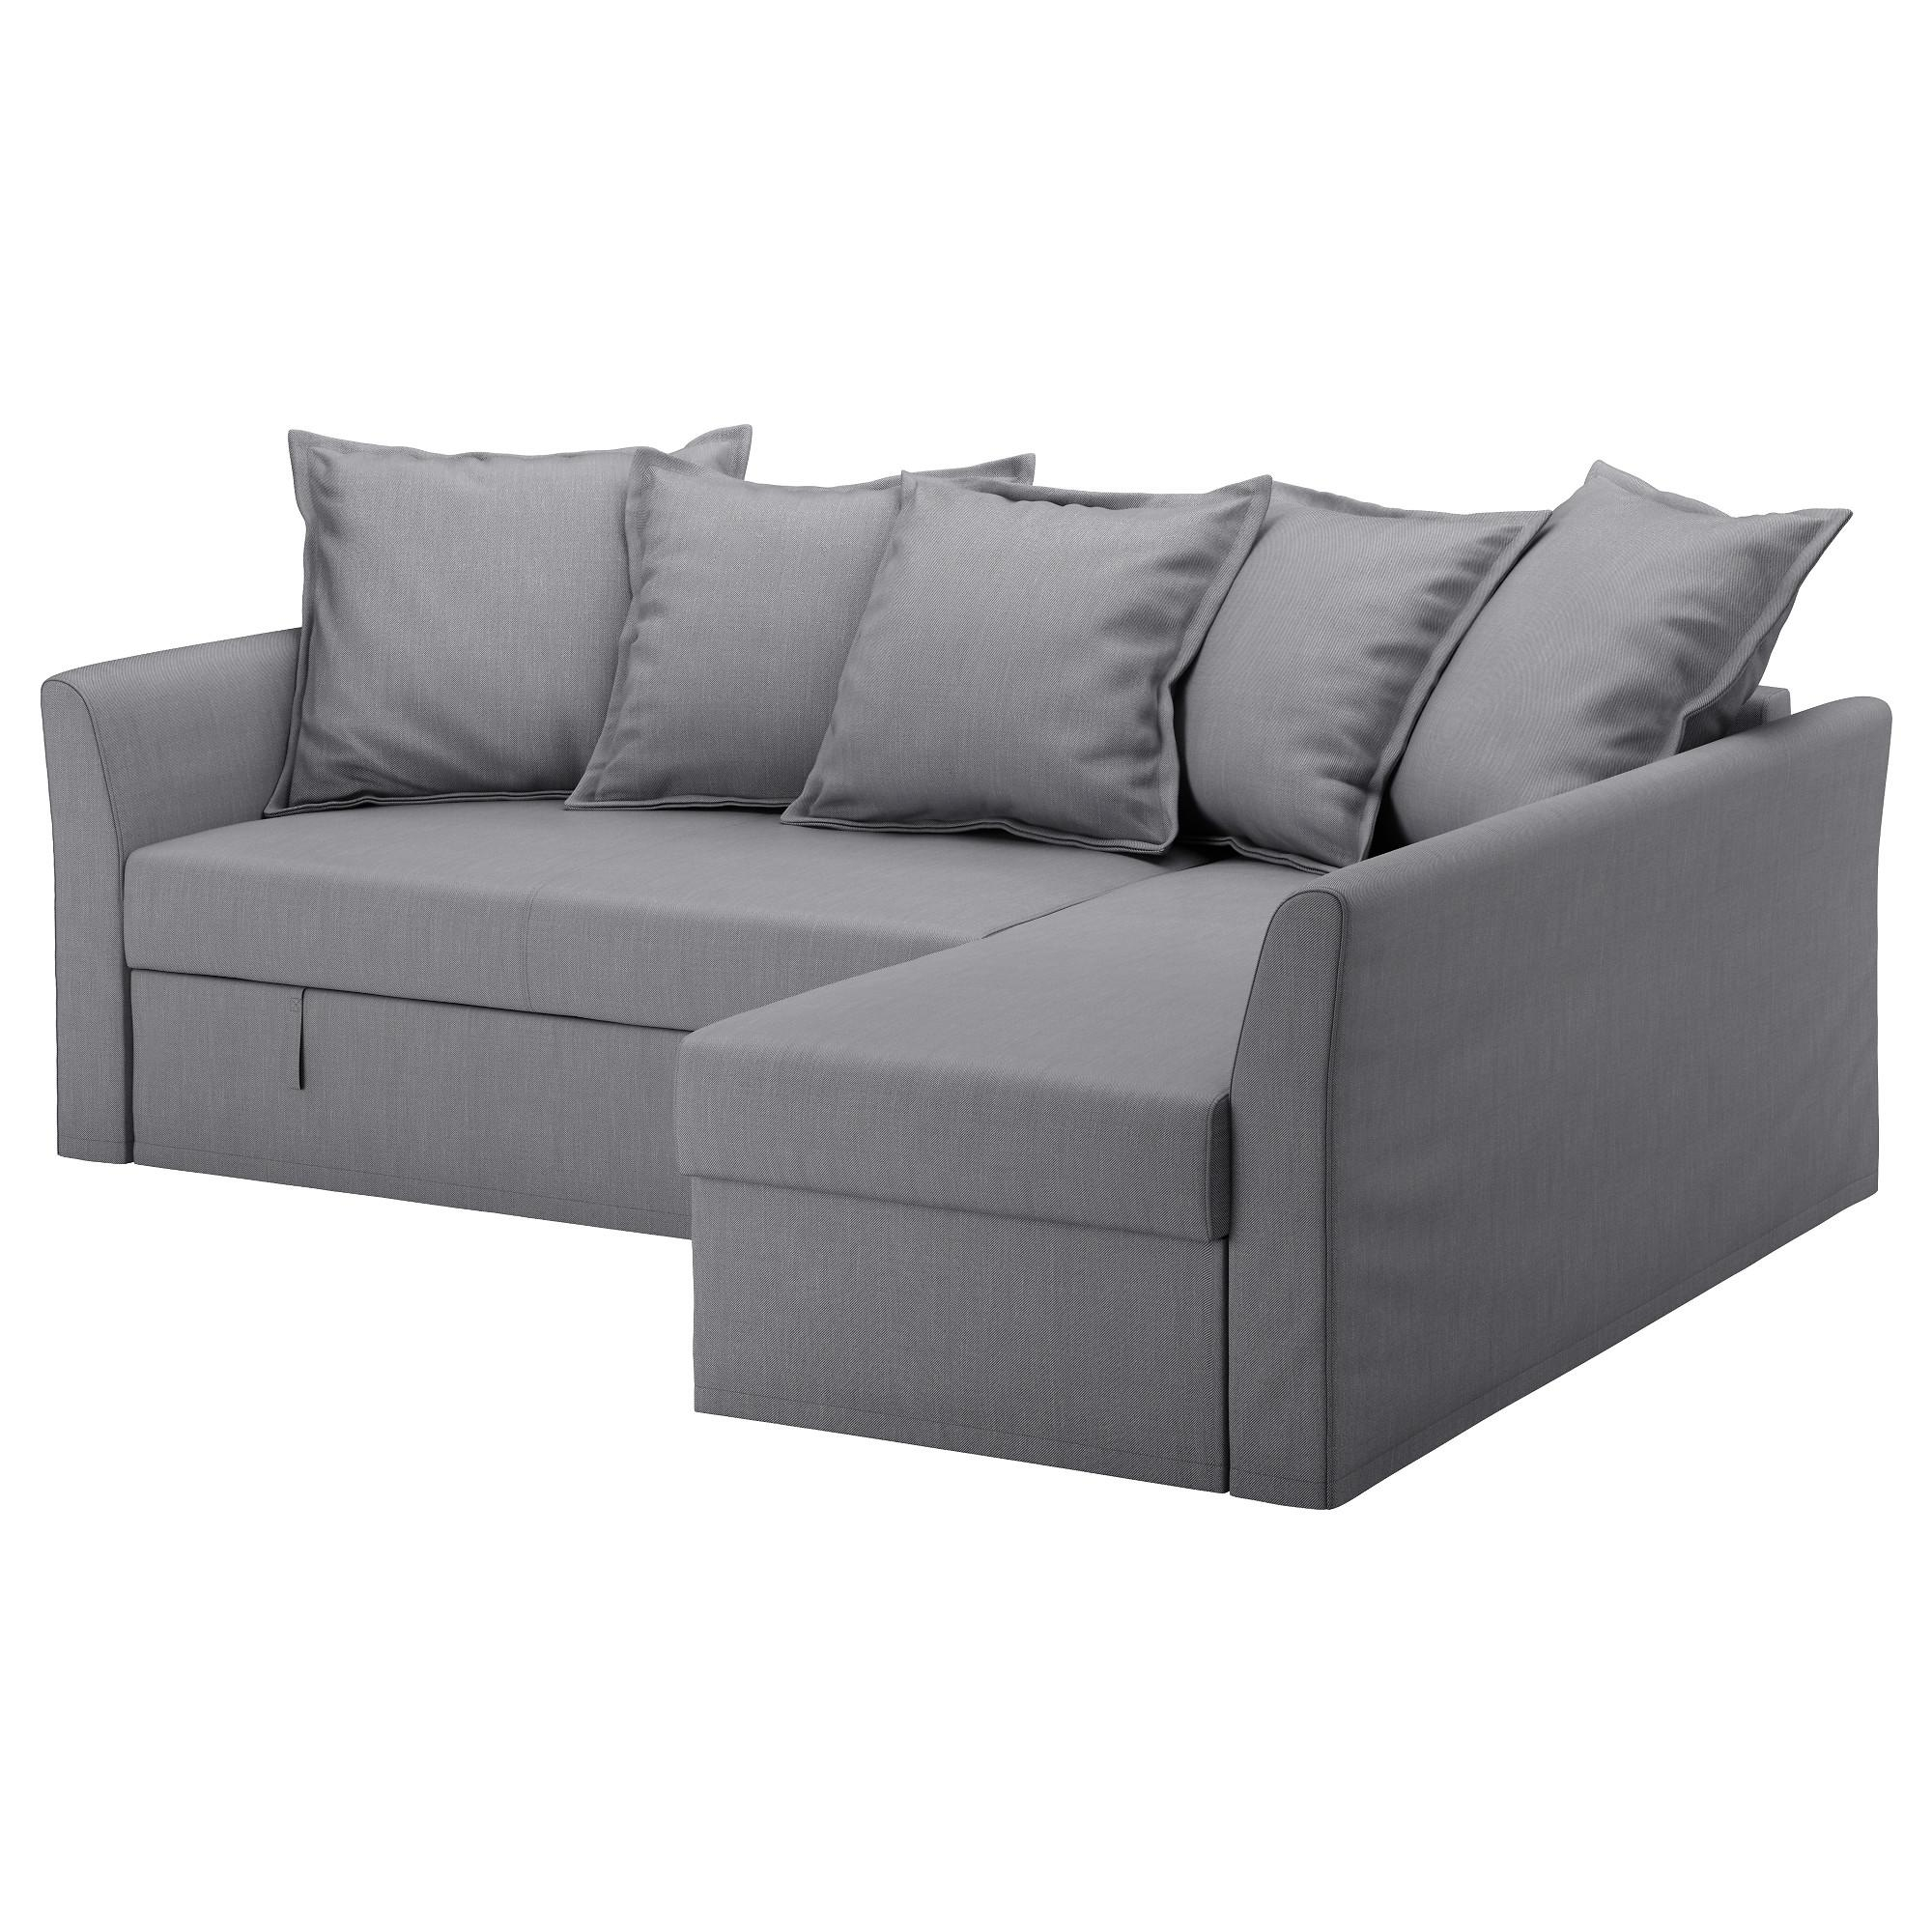 20 best ikea loveseat sleeper sofas sofa ideas. Black Bedroom Furniture Sets. Home Design Ideas